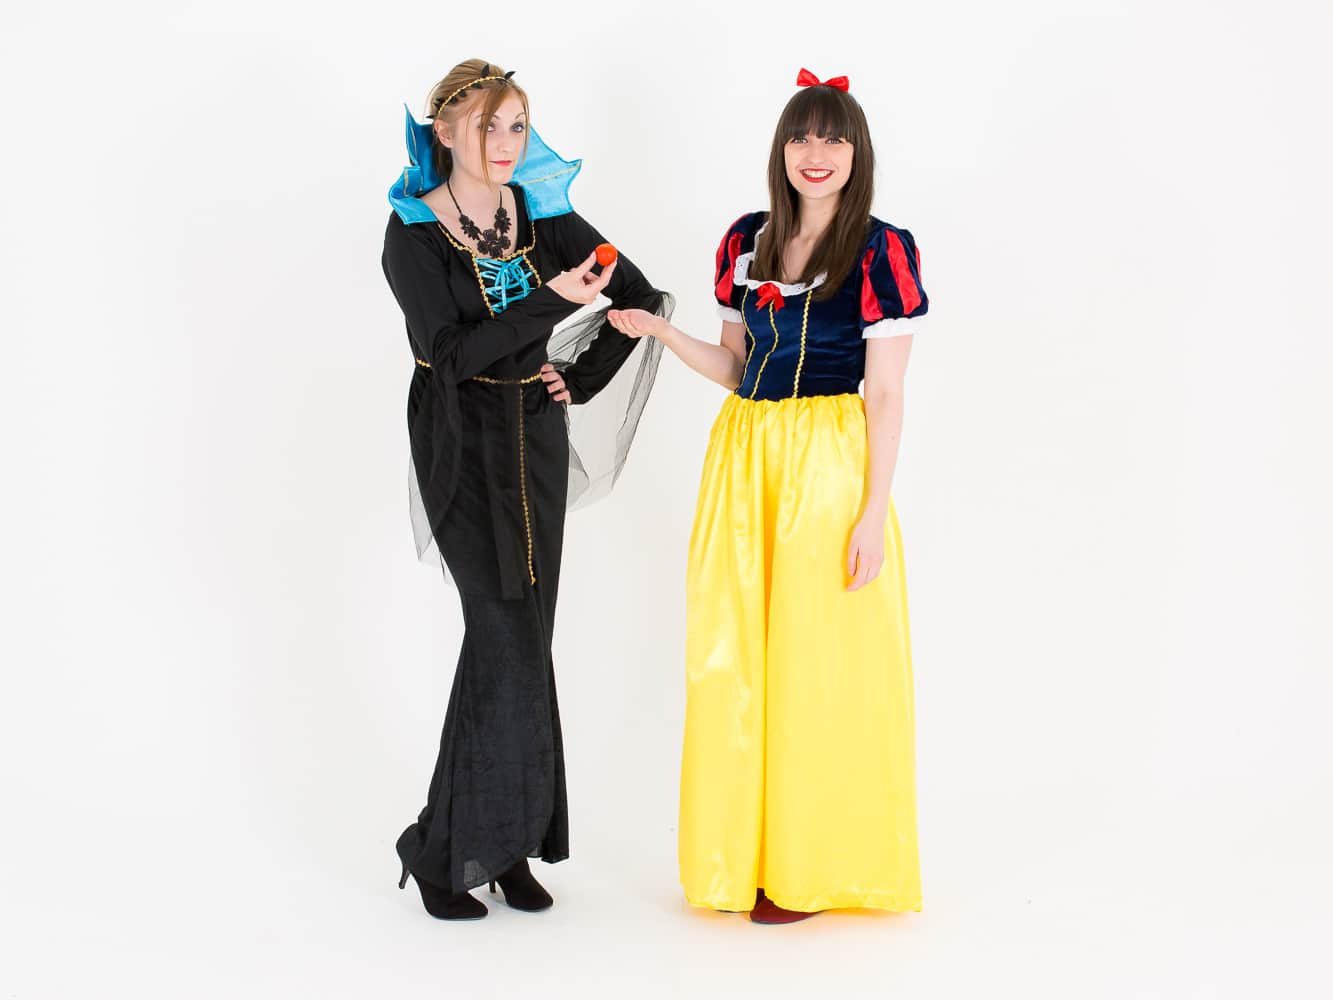 Some of the staff from LNOF dressed up as Snow White and the Evil Queen